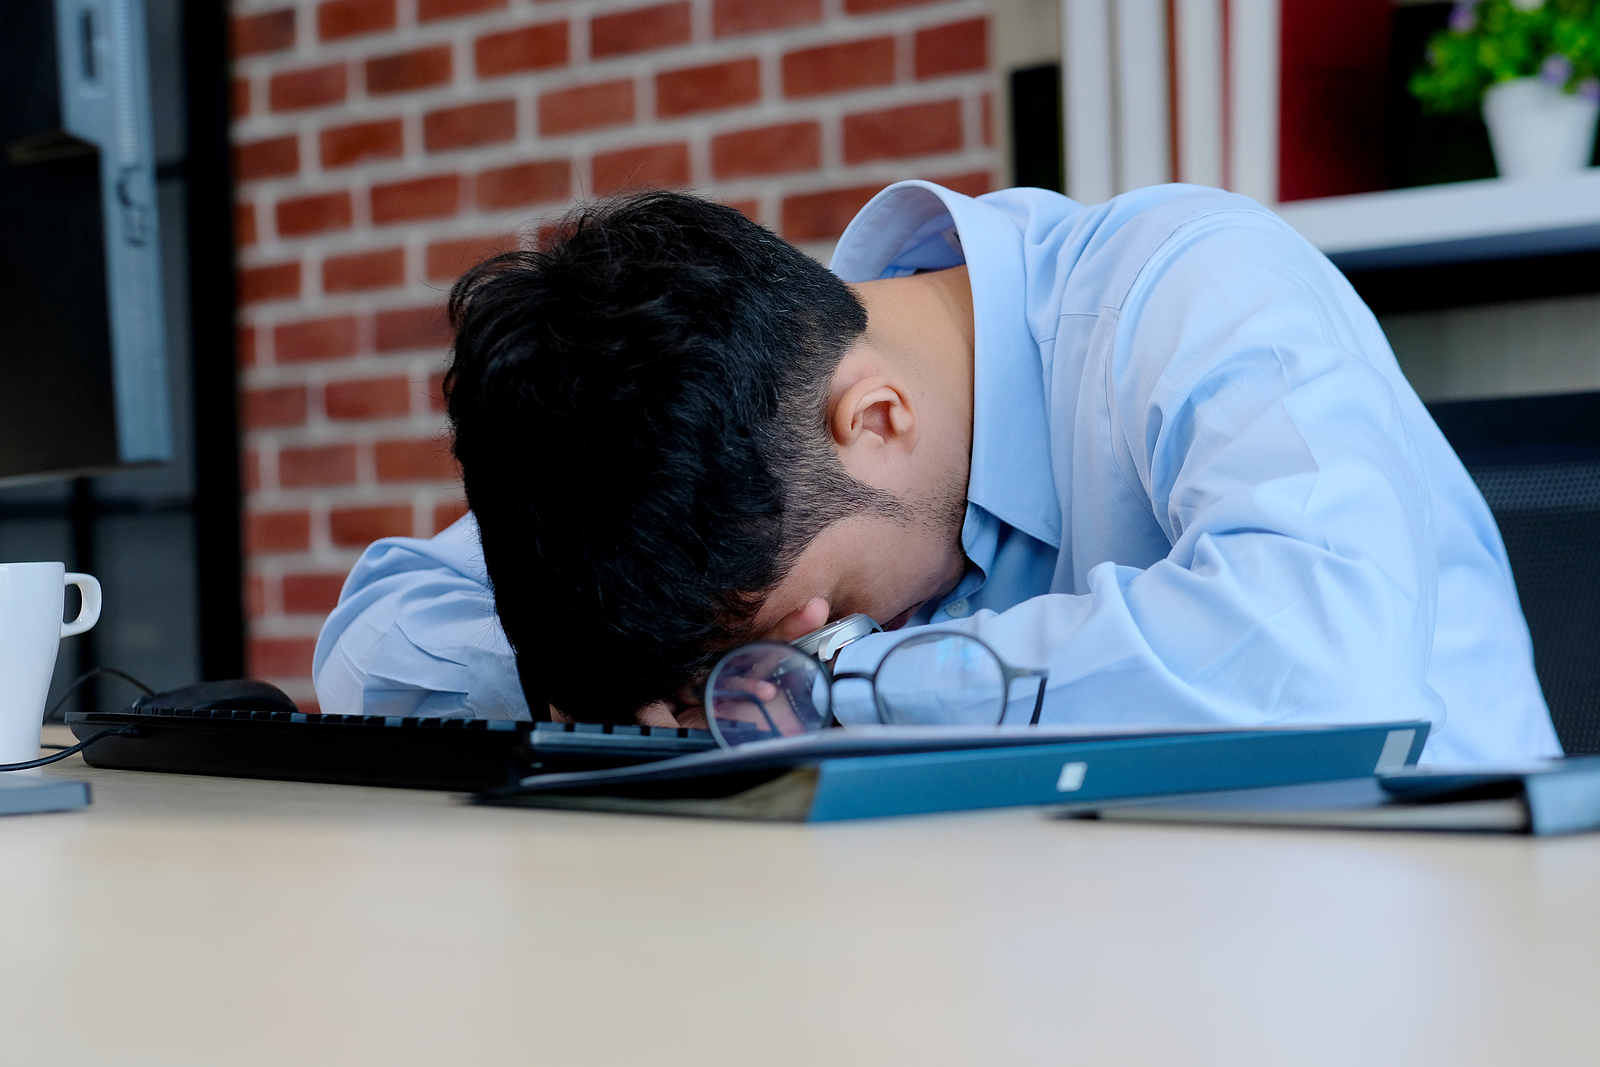 A man hides his face by laying his head on his desk. This could symbolize the stress of starting a first job. We offer support for young adults adapting to change. Contact us for transitions counseling in West Bloomfield, MI, life transition counseling, and more.